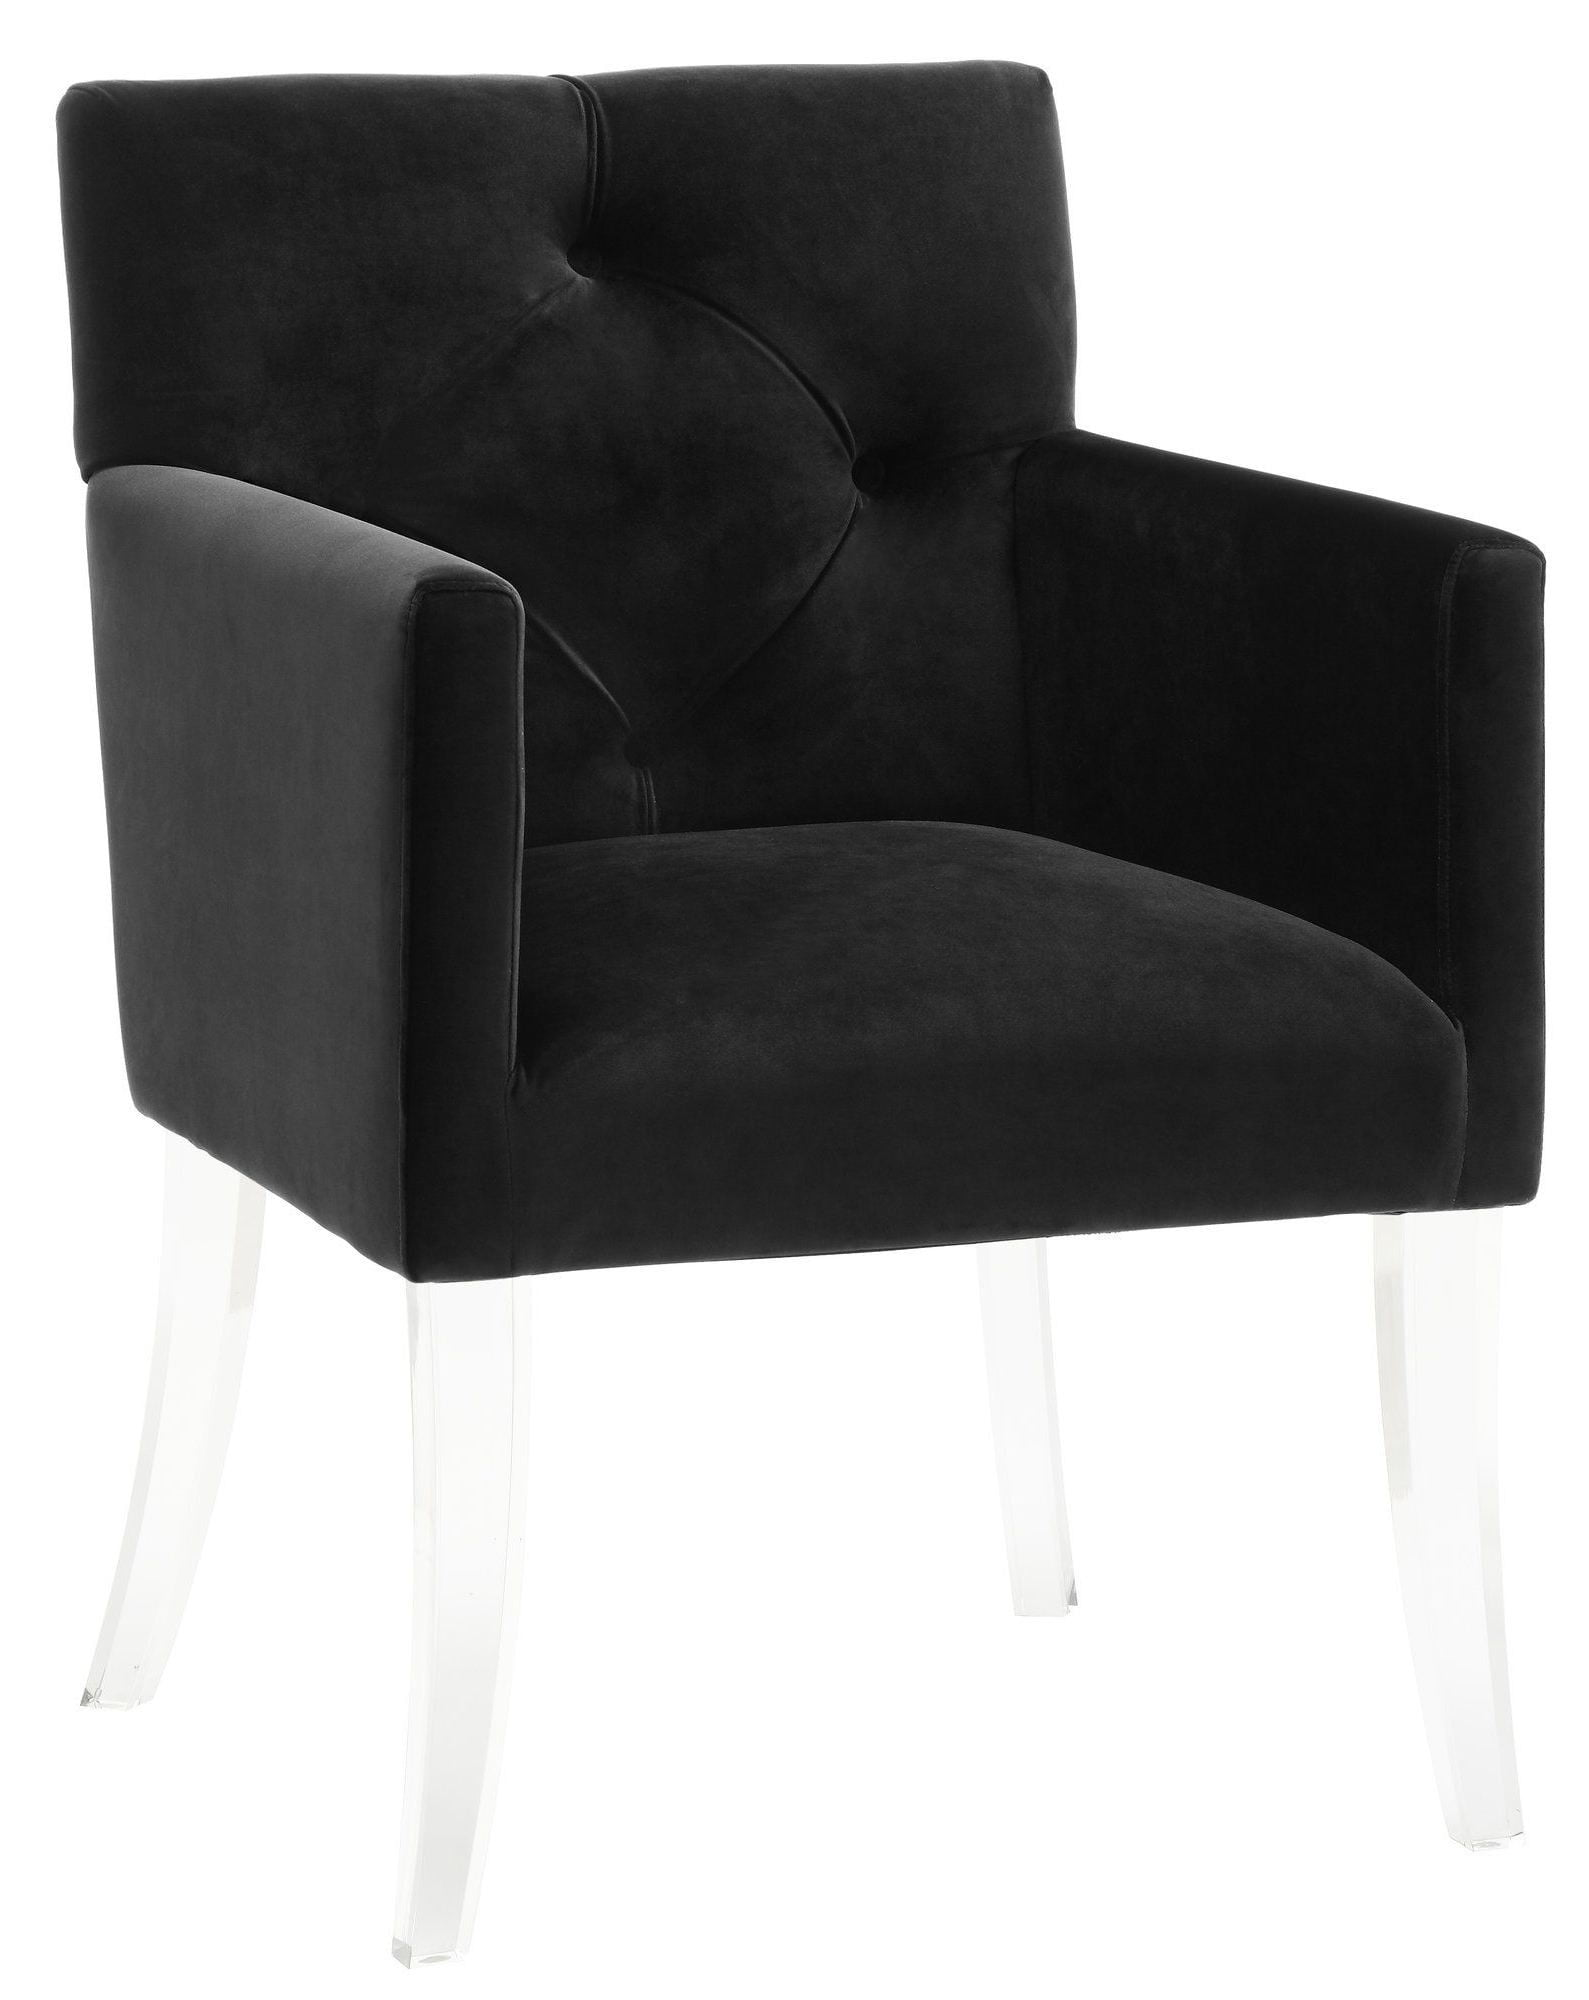 Acrylic Chair Lafayette Black Velvet Acrylic Chair A101 Tov Furniture